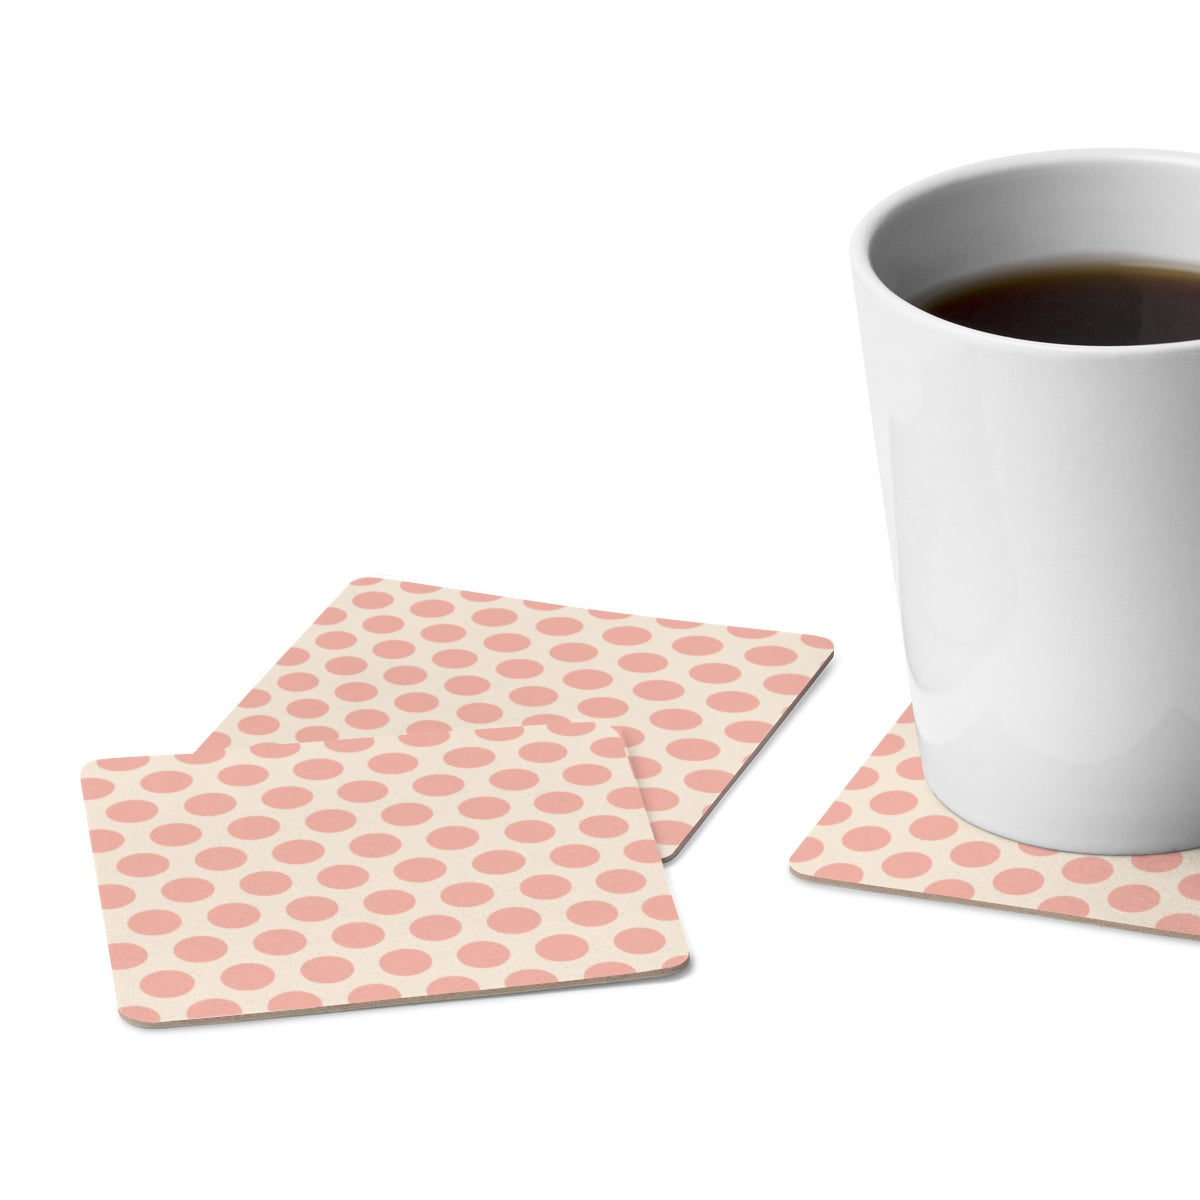 Beige and Pink Polka Dot Square Paper Coaster Set - 6pcs